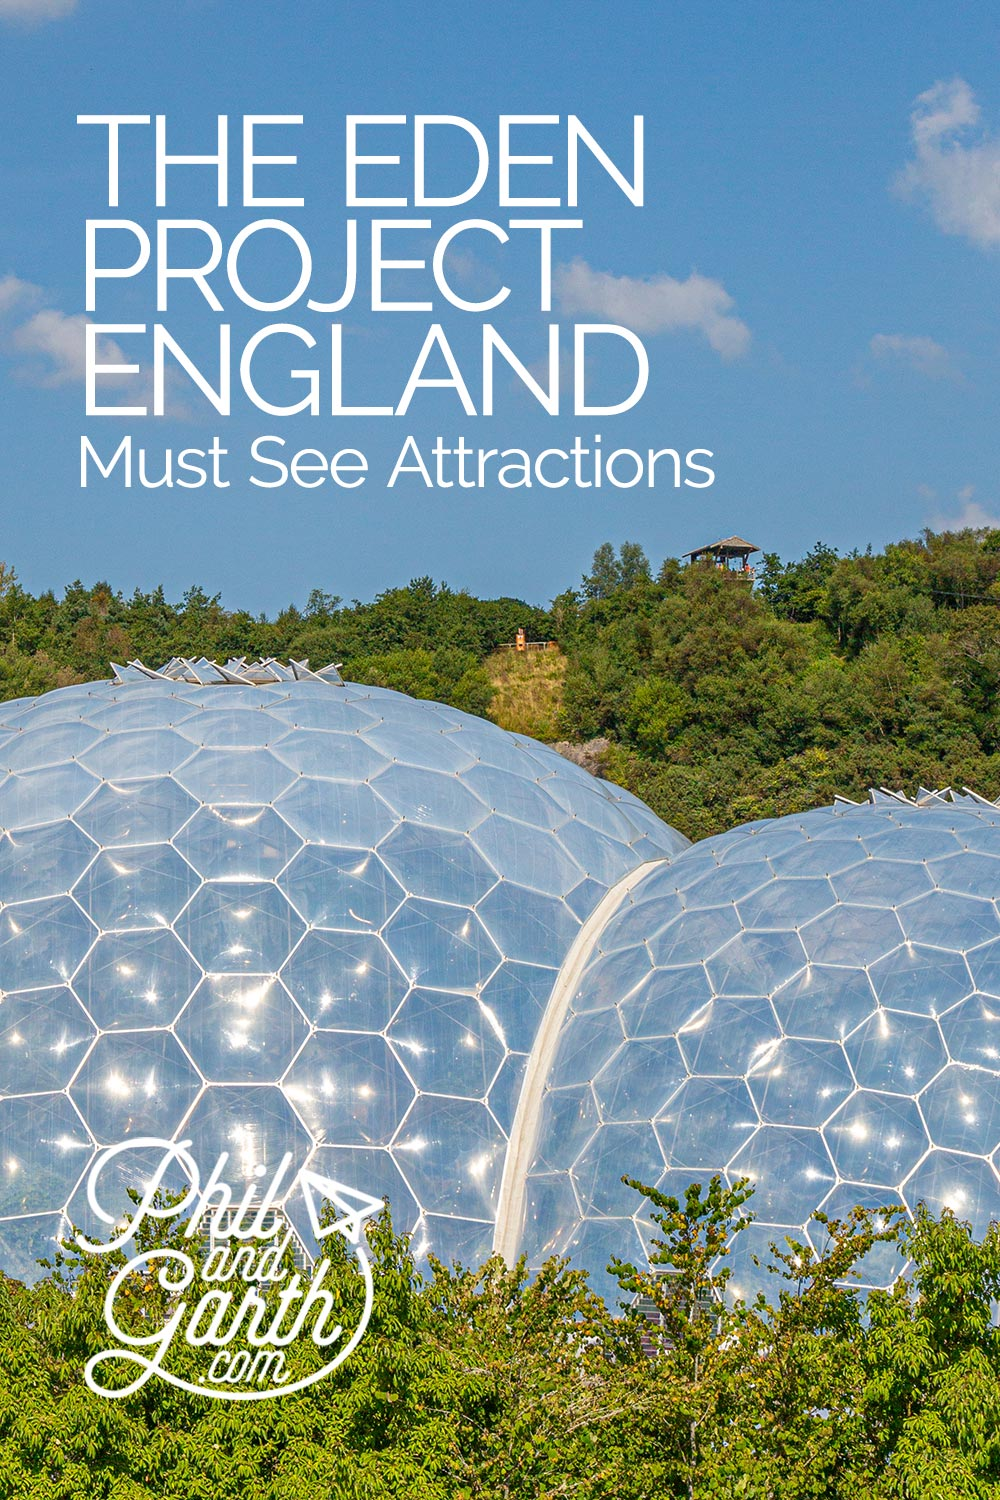 The Eden Project Cornwall England Must See Attractions